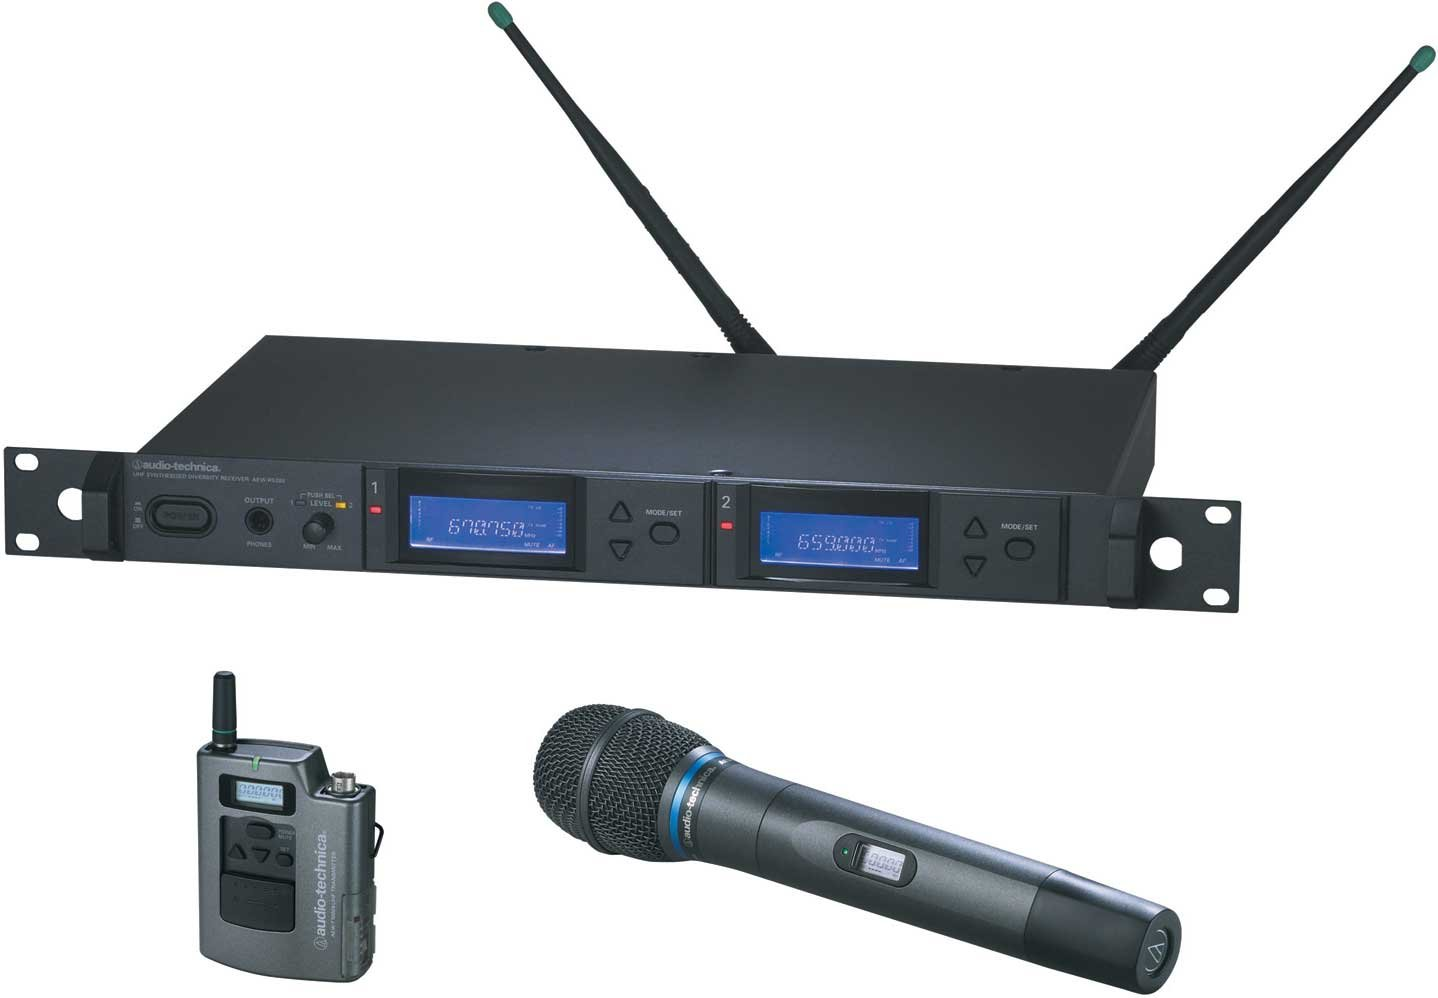 Dual Wireless Microphone System with Bodypack Transmitter & AEW-T5400a Cardioid Condenser Mic/Transmitter, UHF Band C: 541.500 MHz to 566.375 MHz